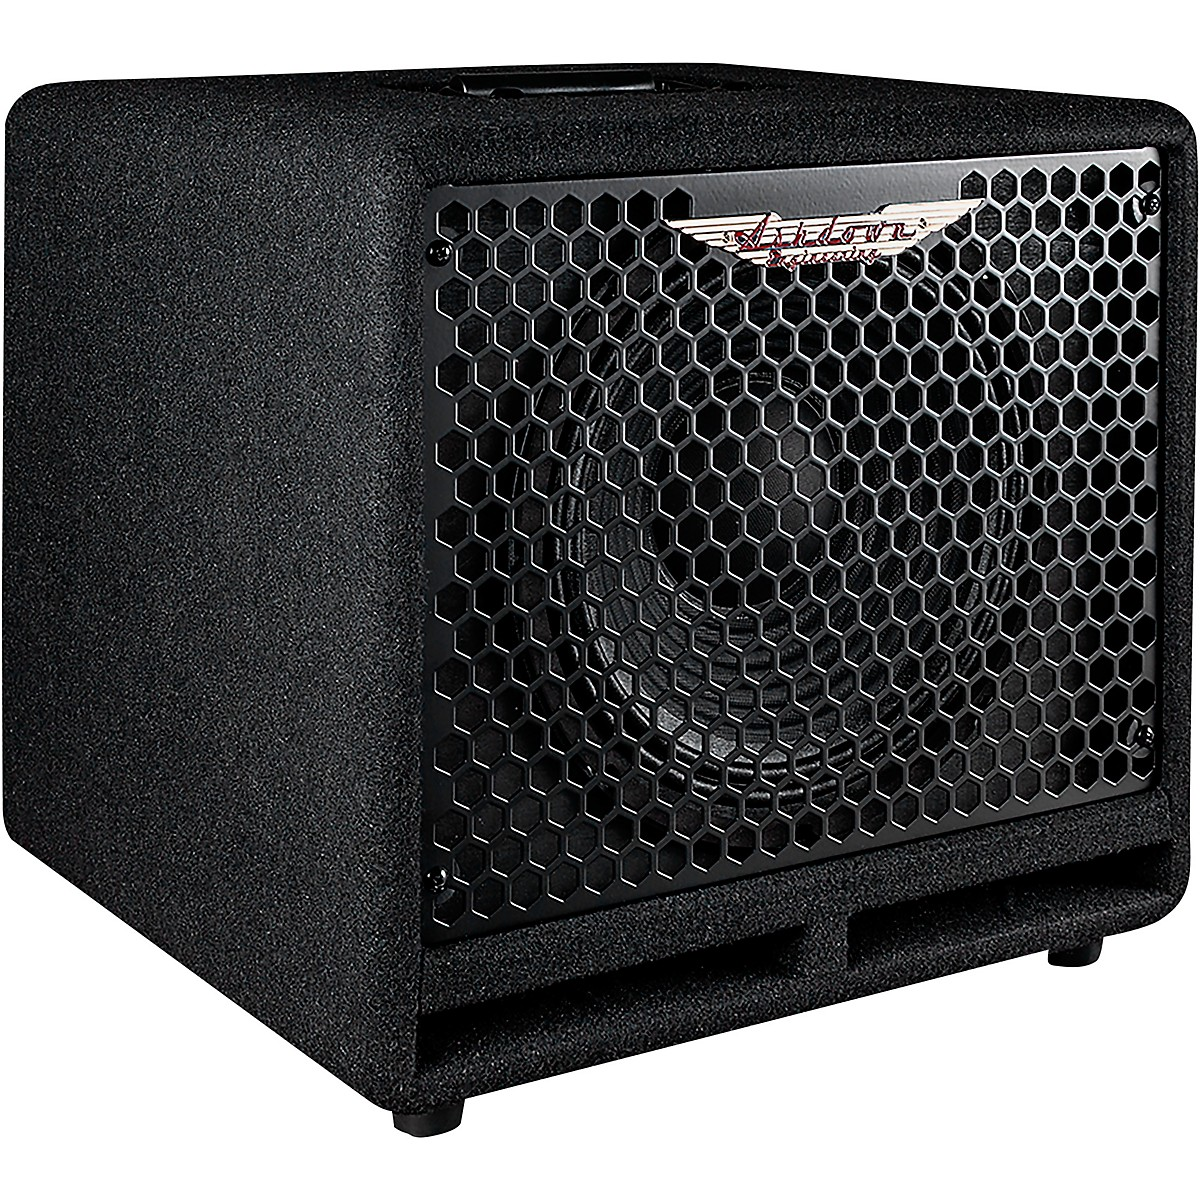 Ashdown Original OR-110 150W 1x10 Bass Speaker Cabinet - 8 ohm